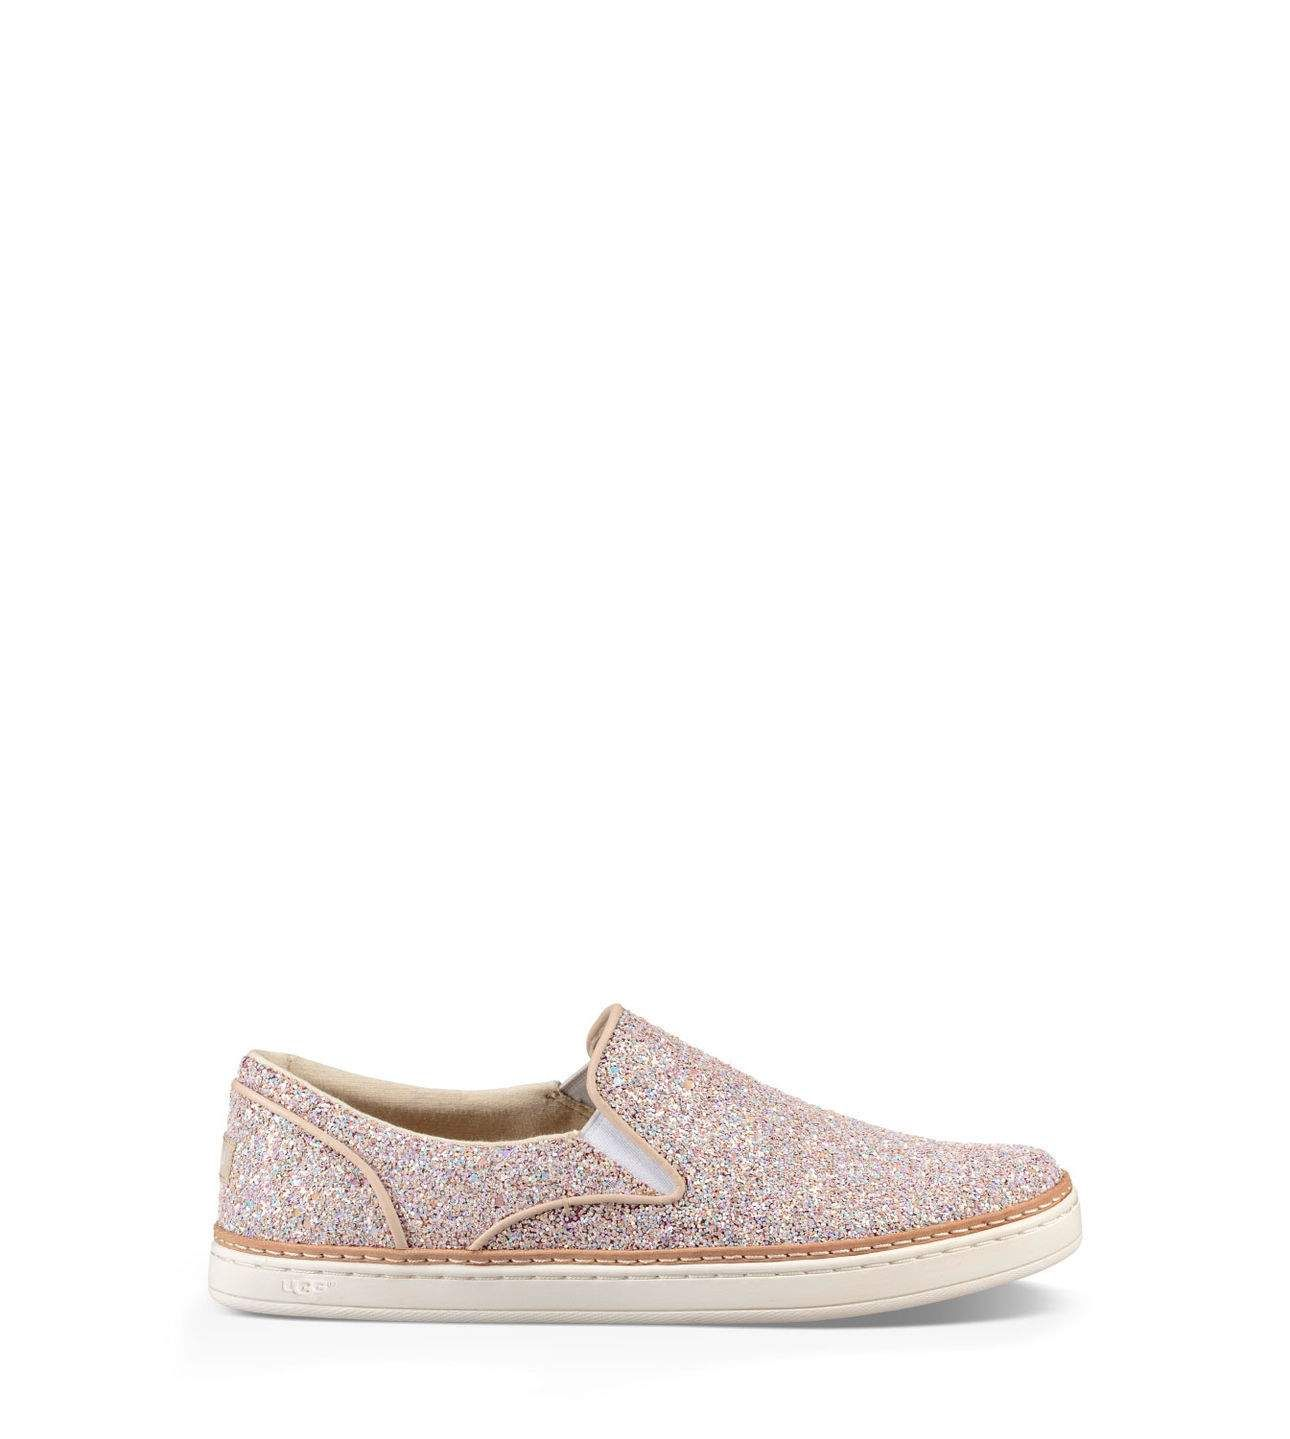 4d27dc47817 Women's Adley Chunky Glitter Slip-on Sneaker | UGG® Official | Just ...